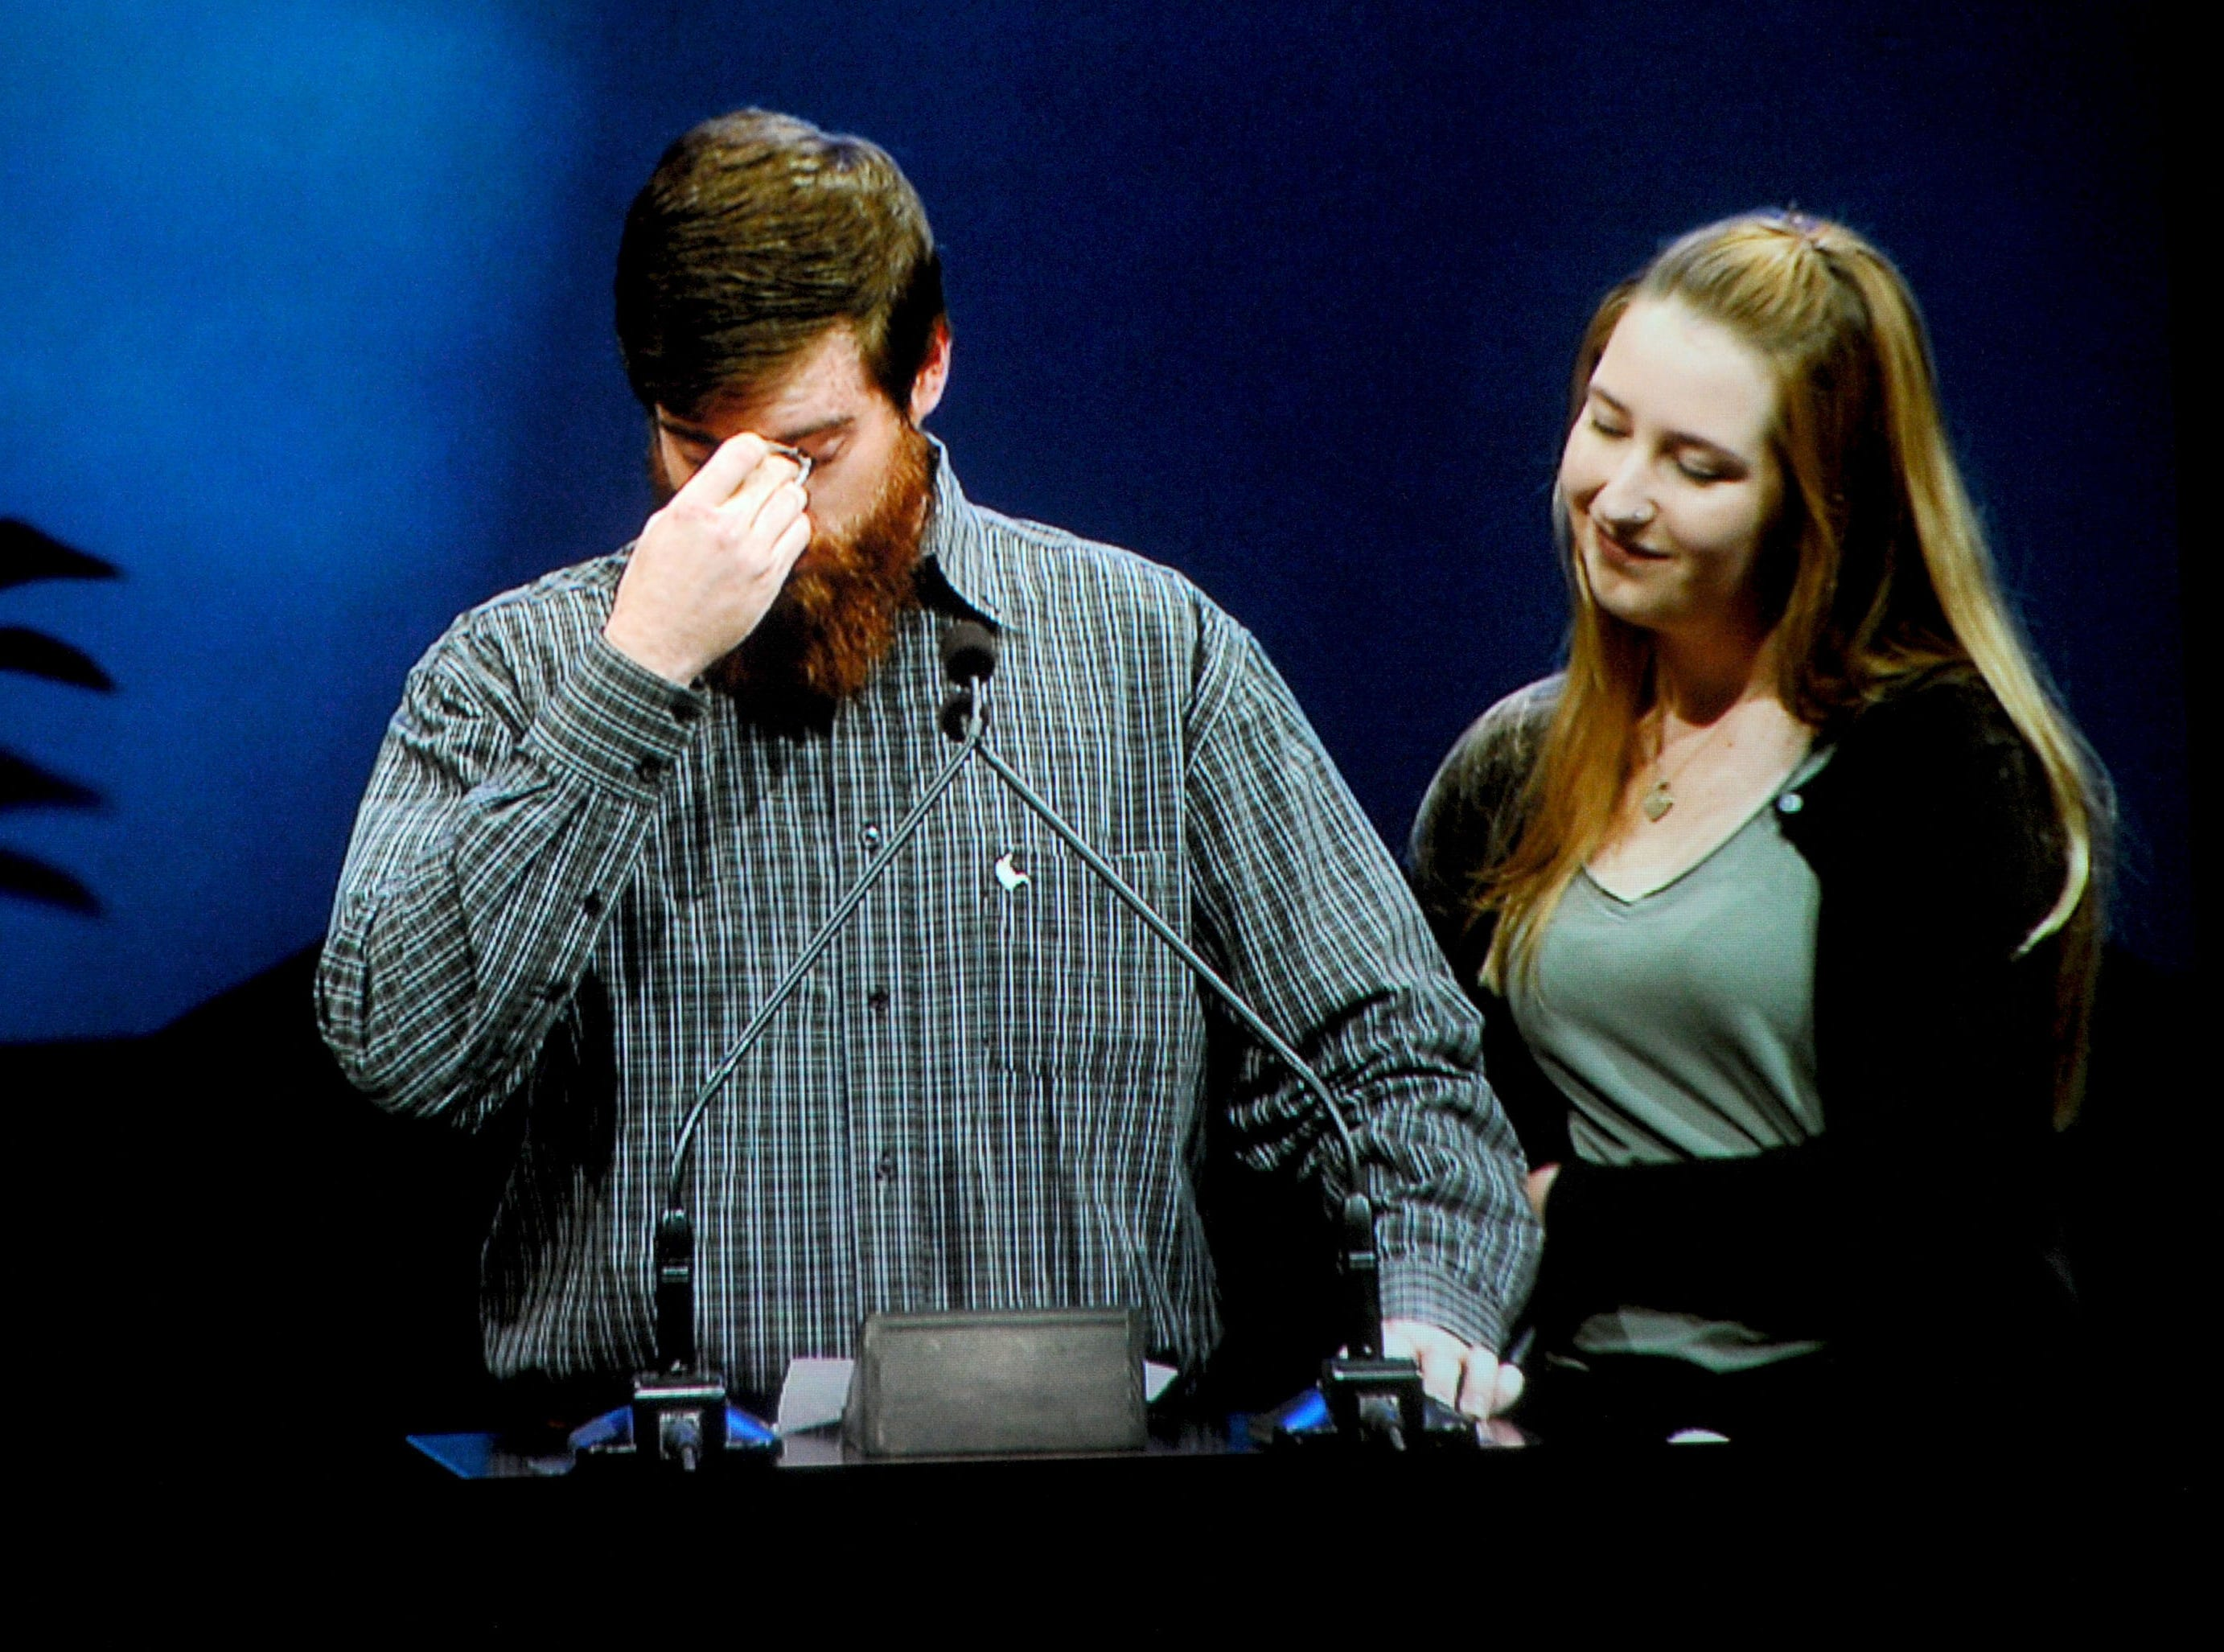 Tony Audenino and Hayely Pelton get emotional as they tell stories at the memorial service for Jake Dunham and Blake Dingman, two of the people slain Nov. 7 at the Borderline Bar & Grill in Thousand Oaks. The memorial service was at Calvary Community Church in Westlake Village.